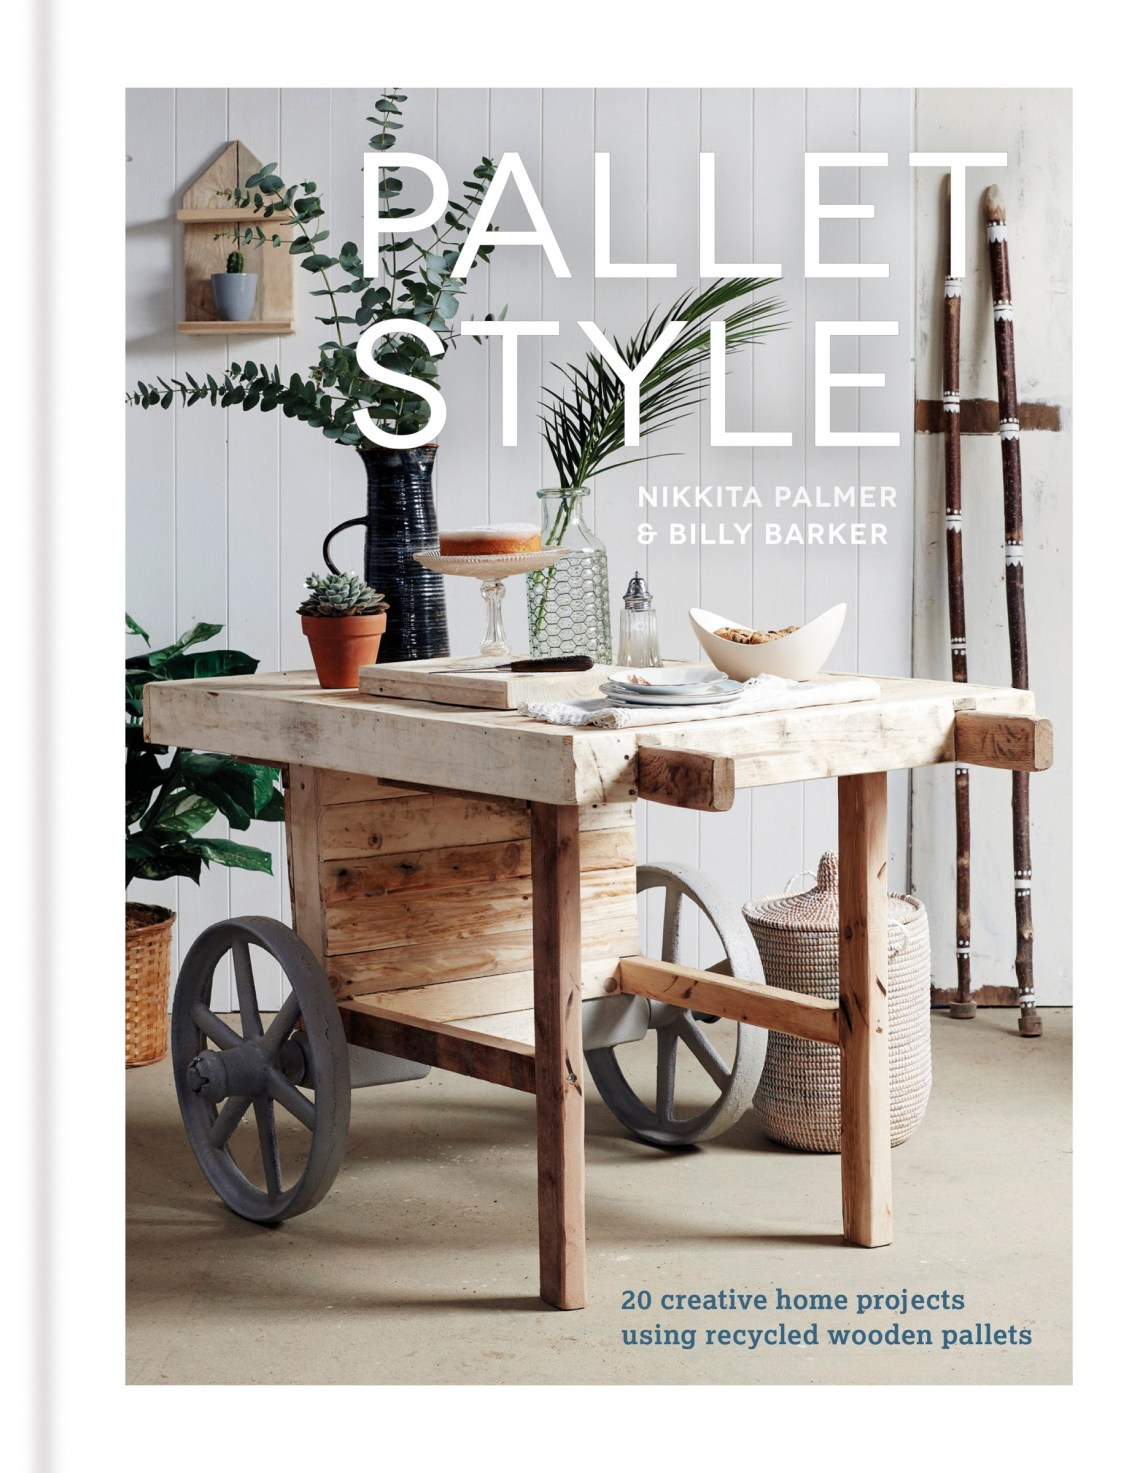 From sofas to shelving to a stylish home bar, Pallet Style shows you how to create your own furniture using reclaimed wooden pallets. Whether you want to make something in a weekend or are embarking on a more complex bespoke piece for your home, each of Nikkita and Billy's projects are stylish design solutions, perfect for Scandi-influenced urban apartments or rustic retreats. An introductory section explains the different kinds of standard pallets, many of which can be sourced for free as they are so readily available. Full instructions for deconstructing a pallet are provided, together with ideas on how to source them. The projects are divided into three sections - Furniture, Storage & Display and Accessories - each project includes full step-by-step instructions and photographs. In furniture, find out how to construct a bed, a home bar or a coffee table. Storage & Display features makes for a display shelf, a herb box planter and a log 'basket', as well as a recycling centre for your kitchen. In Accessories, find out how to make key hooks, a breakfast tray and a festival sign.